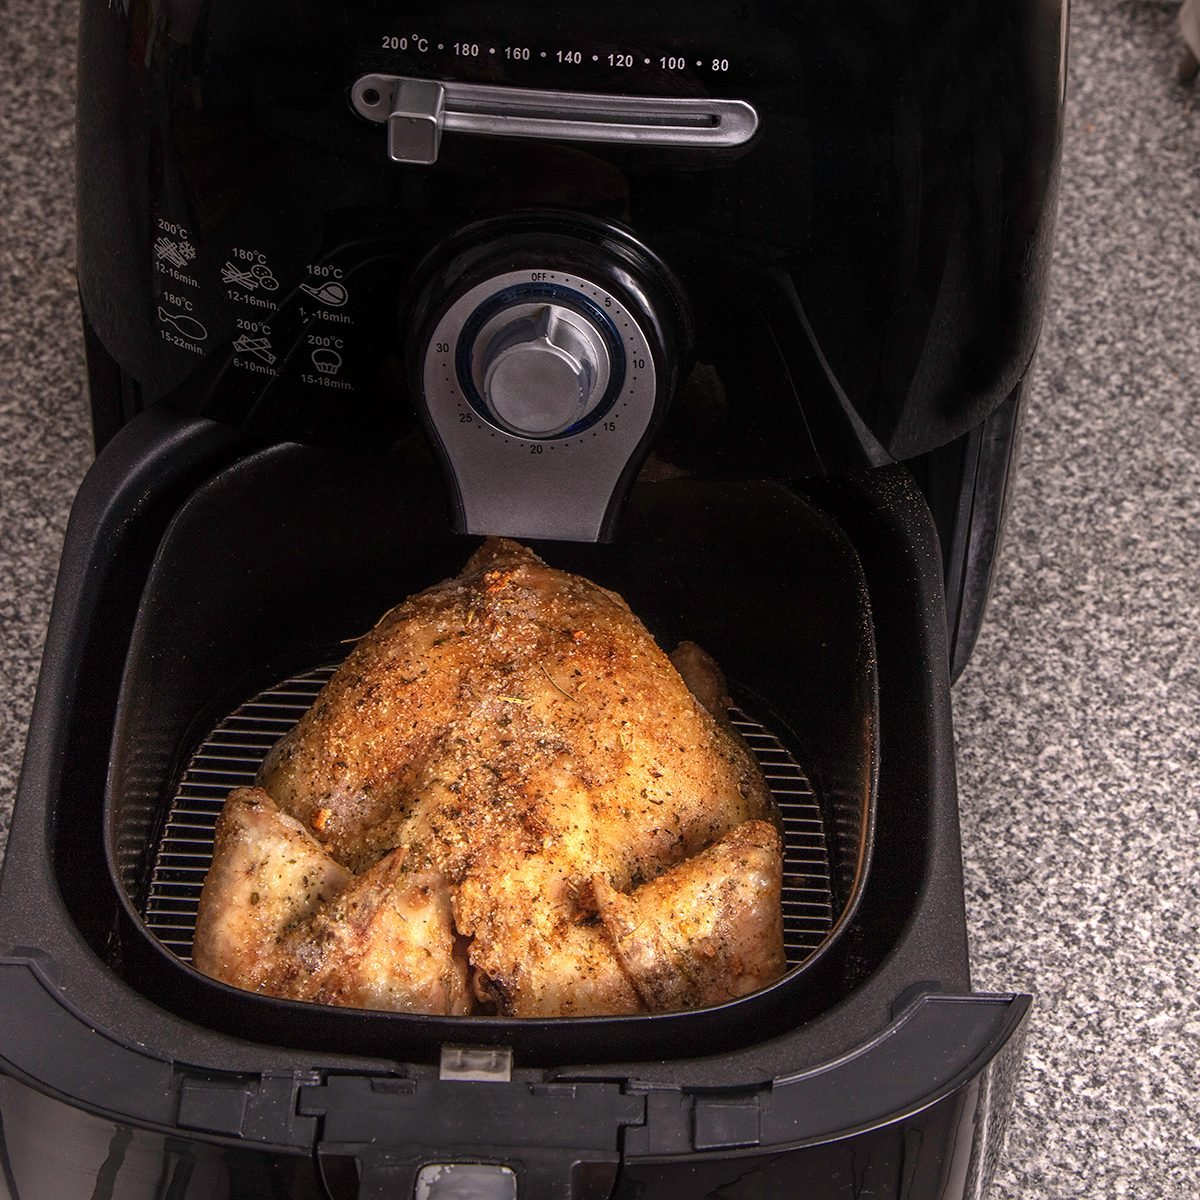 Roasted turkey in the hot air fryer / oven in the kitchen seen from above.